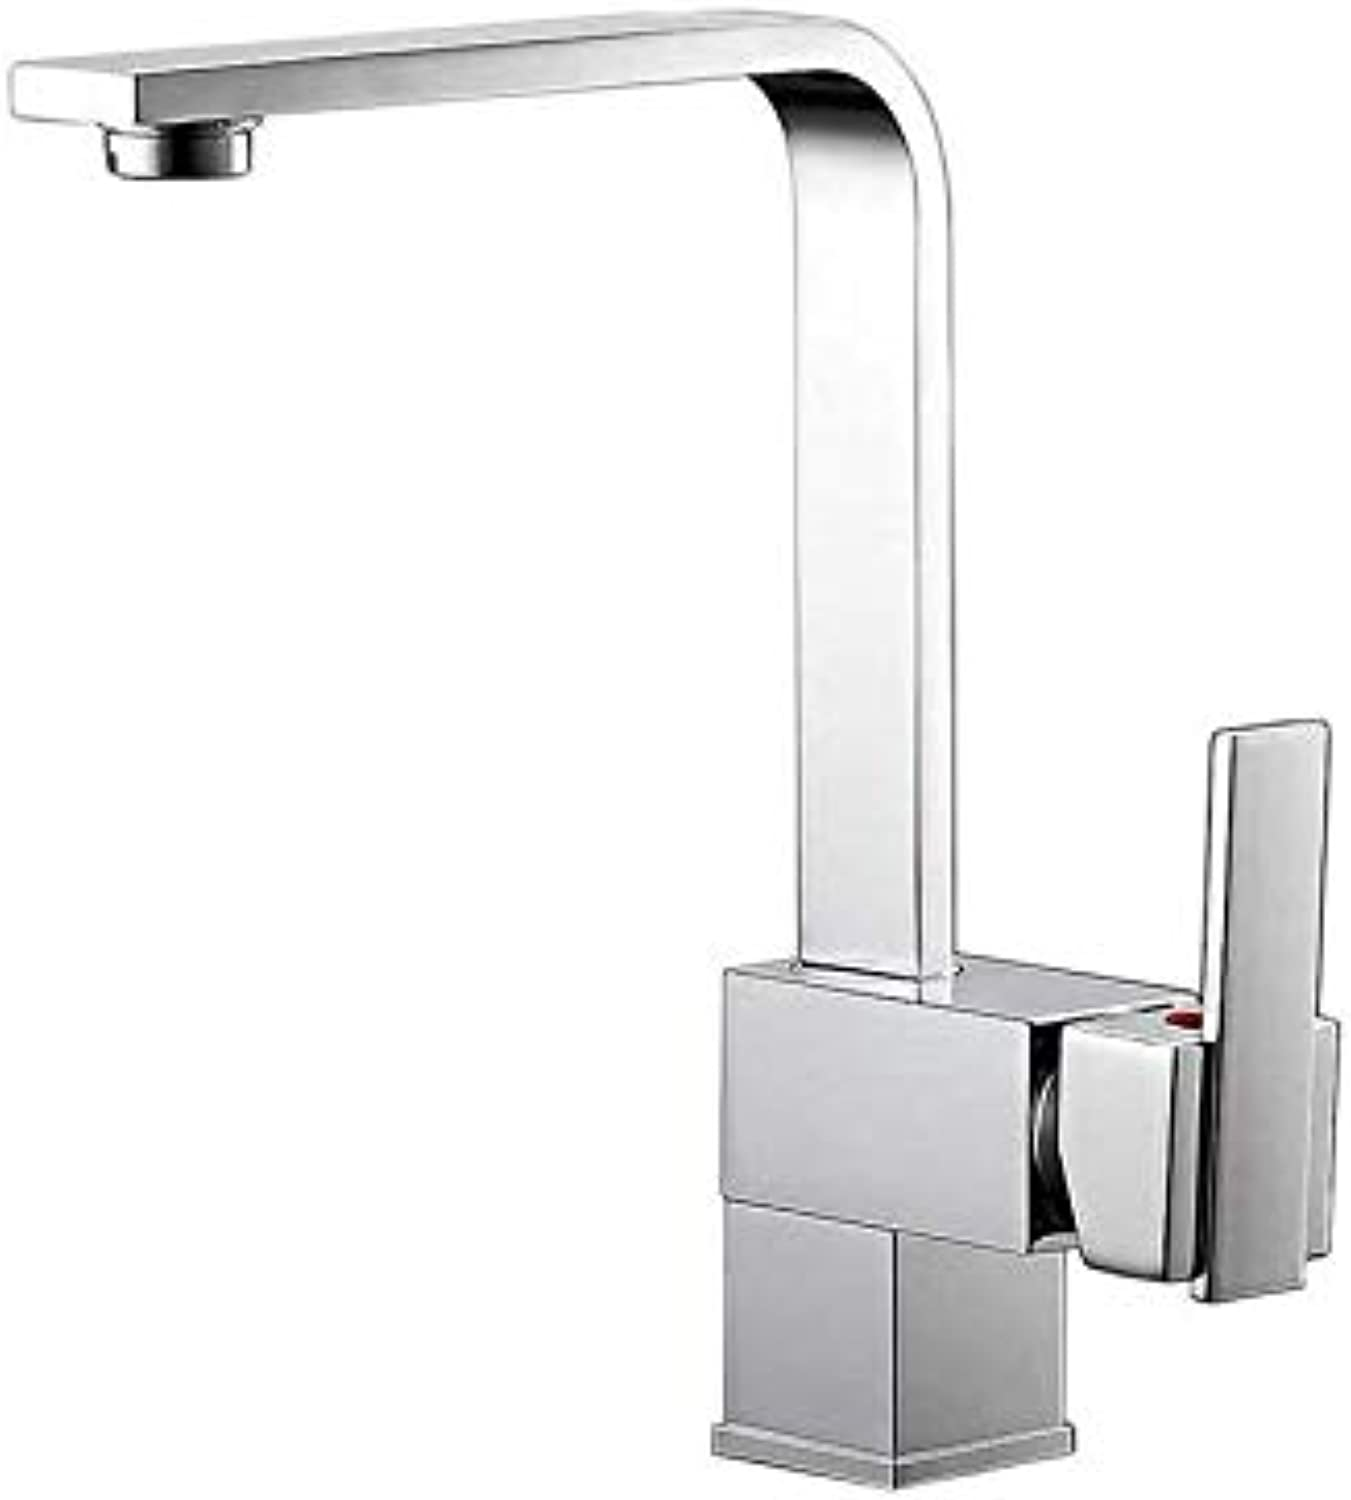 360 Degree redatable Faucetkitchen Faucet Sink Mixer Taps Hot and Cold Hot and Cold Water Mixer Taps (color   -, Size   -)